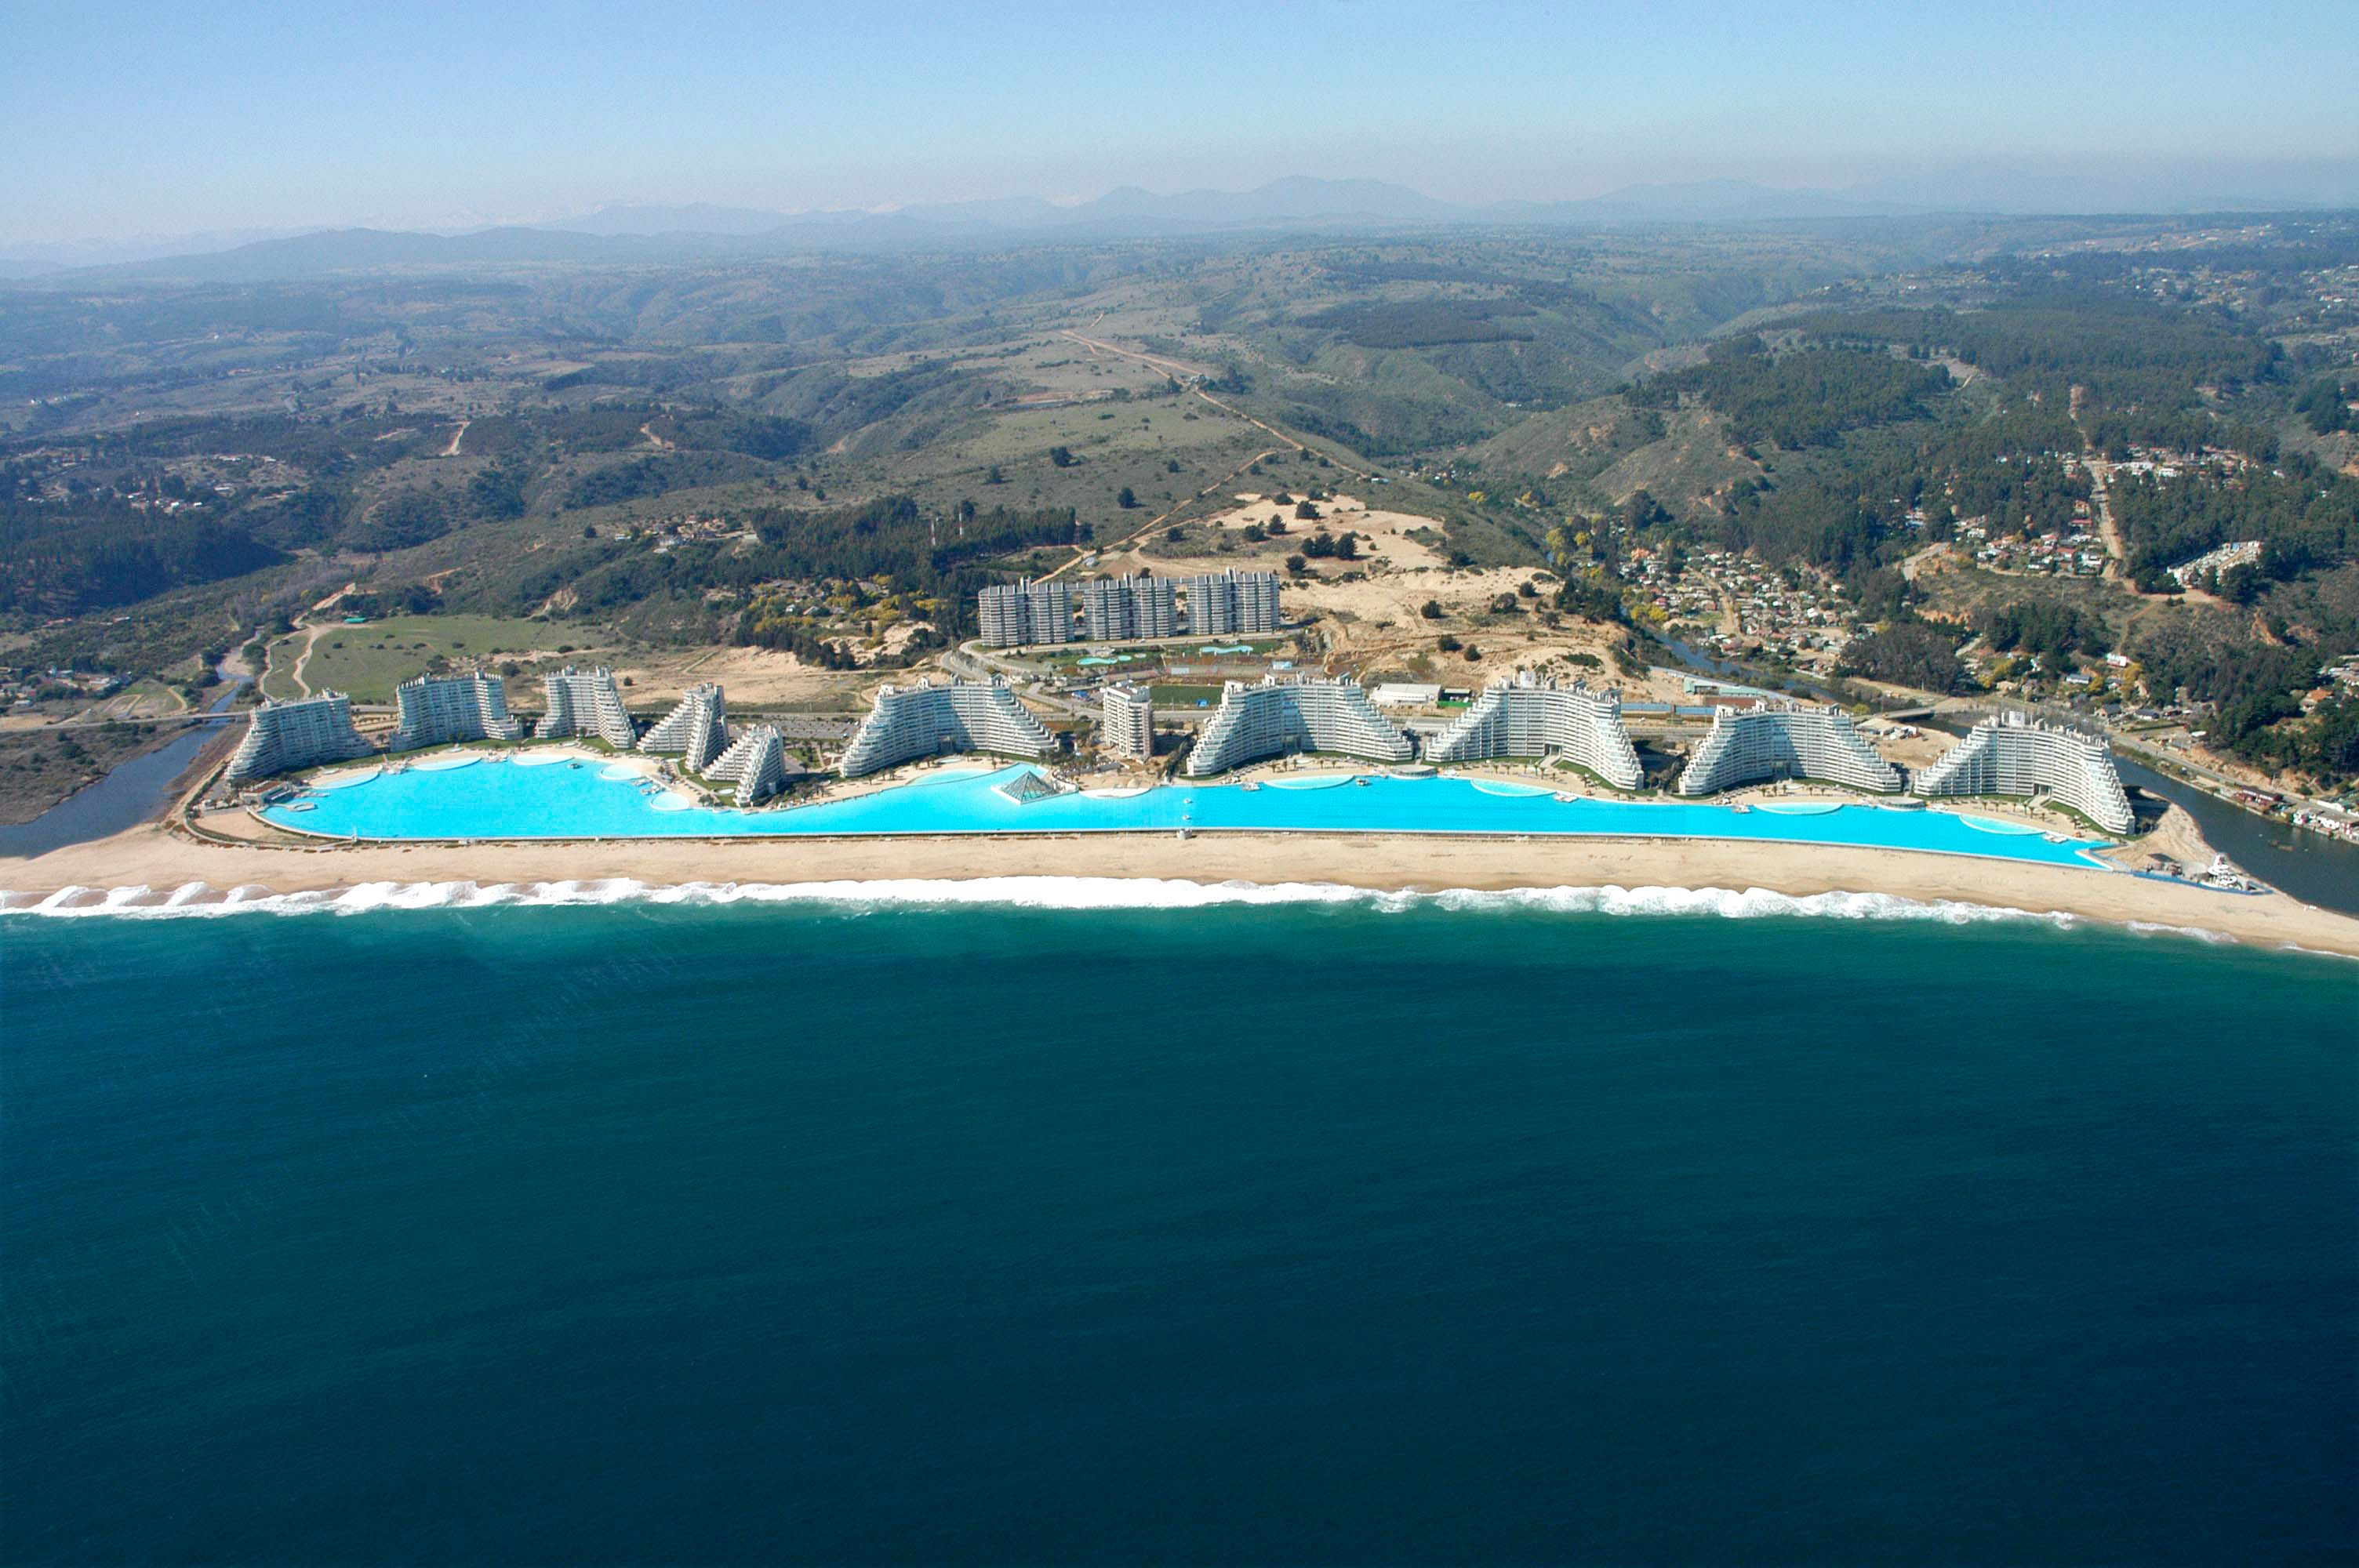 The Biggest Swimming Pools In The World